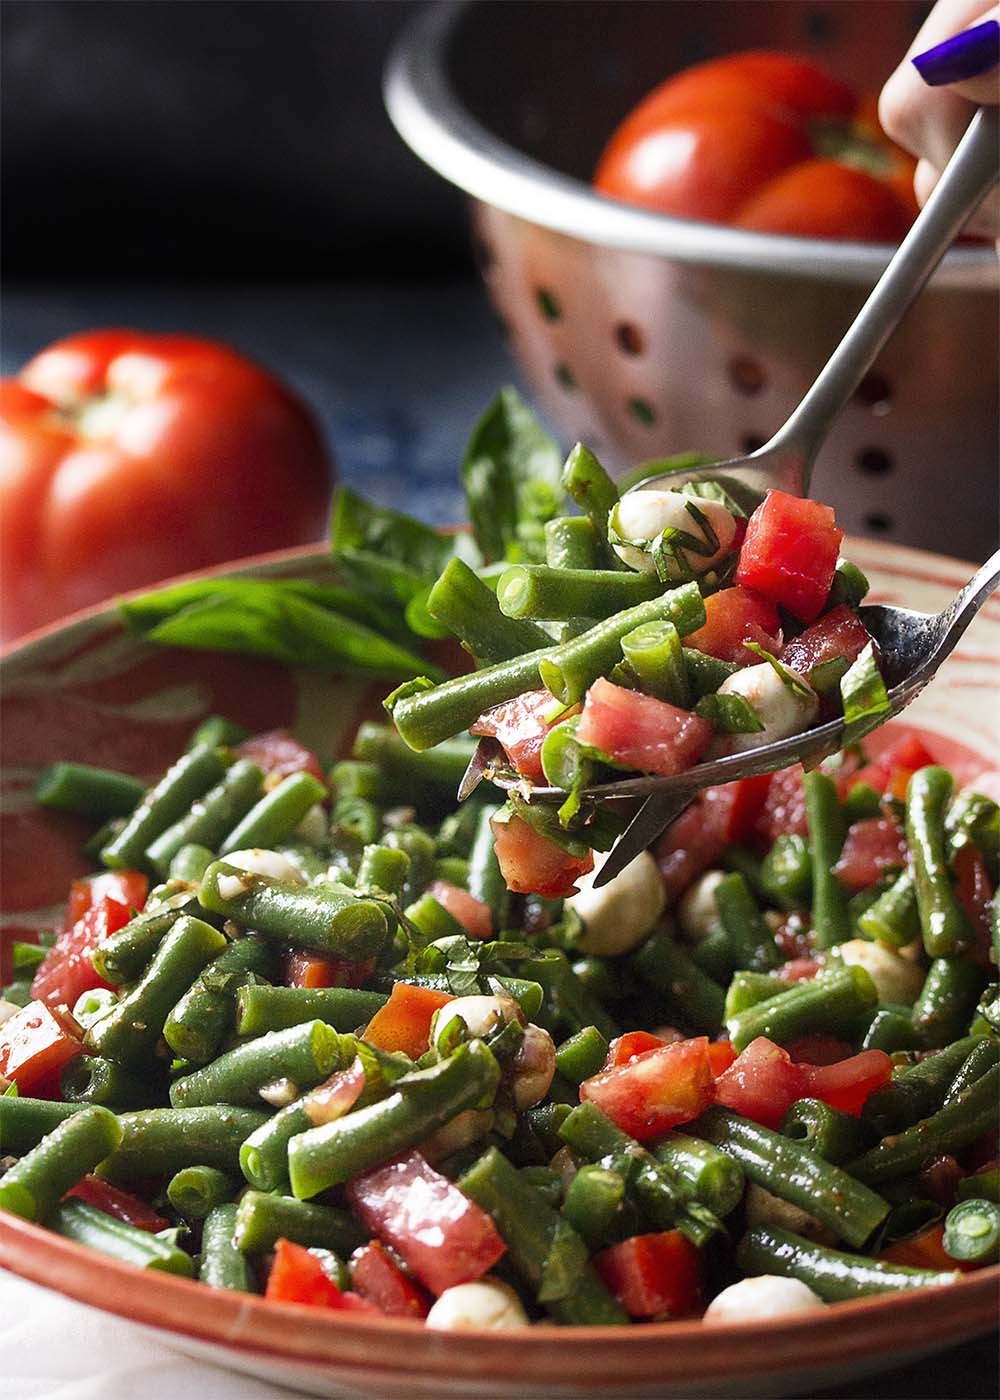 Scooping up a portion of green bean, tomato, mozzarella, and basil salad from the serving bowl.